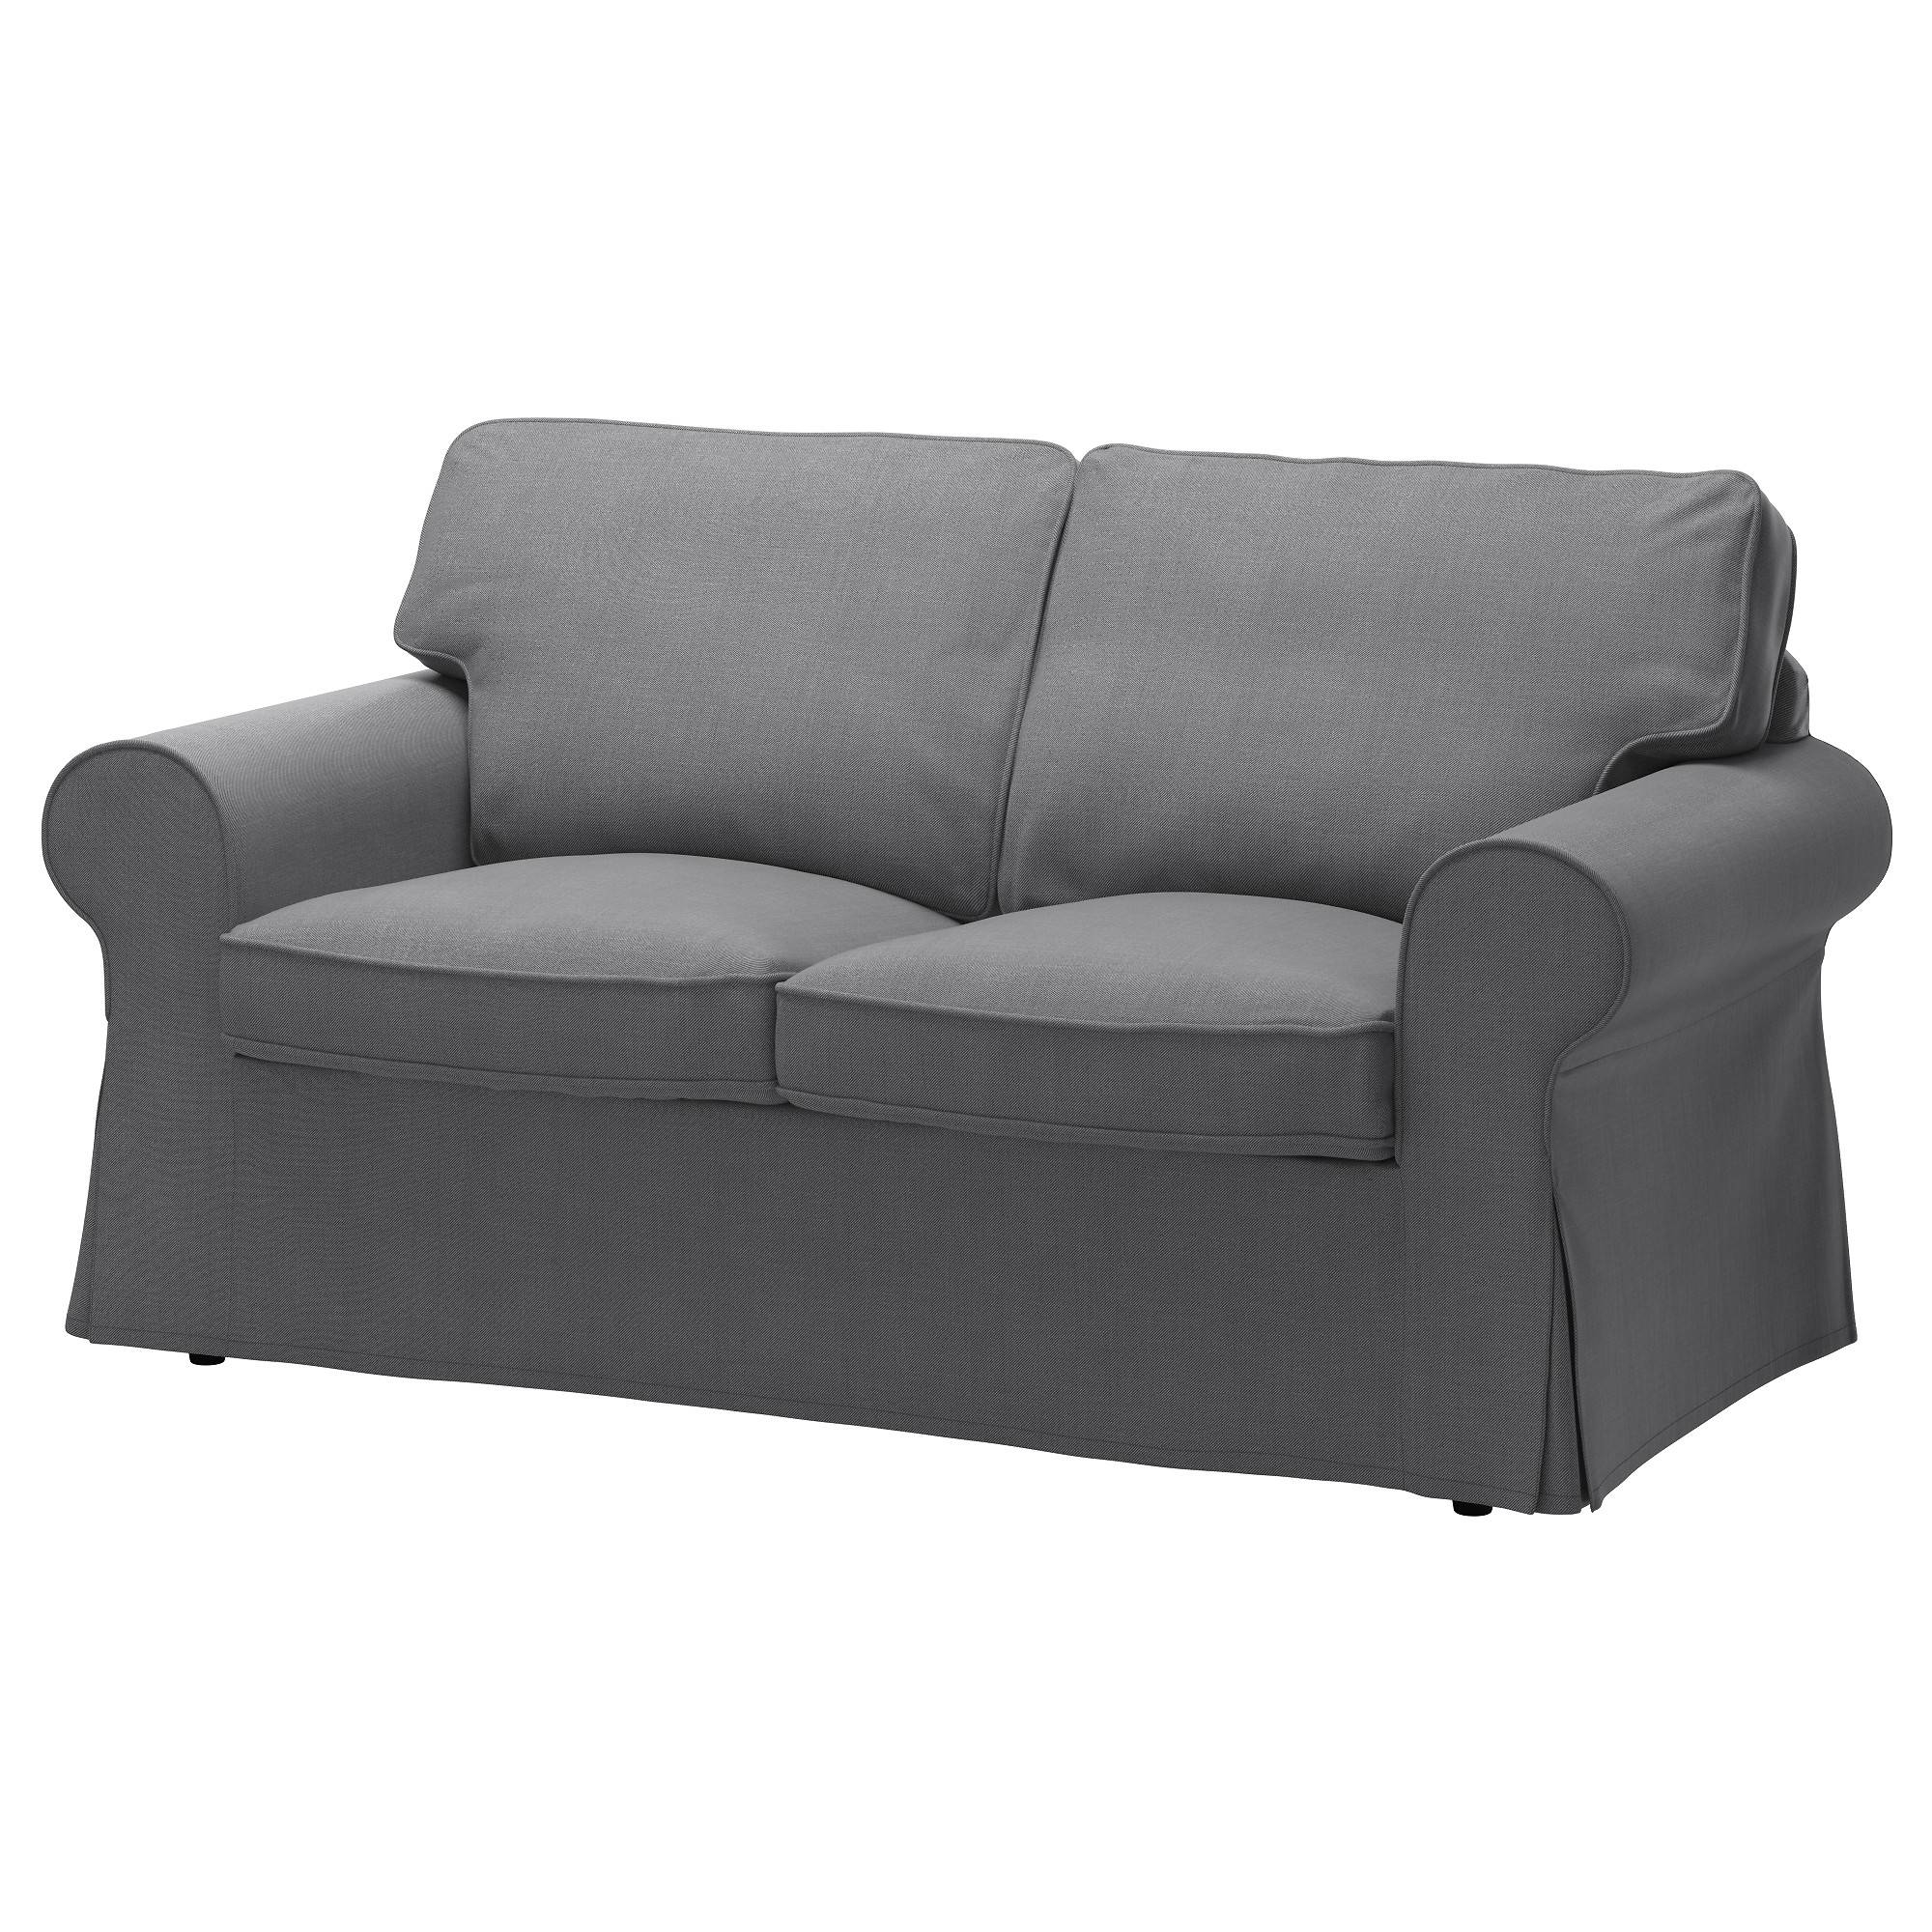 Ektorp Two-Seat Sofa Nordvalla Dark Grey - Ikea with regard to Ikea Two Seater Sofas (Image 5 of 30)